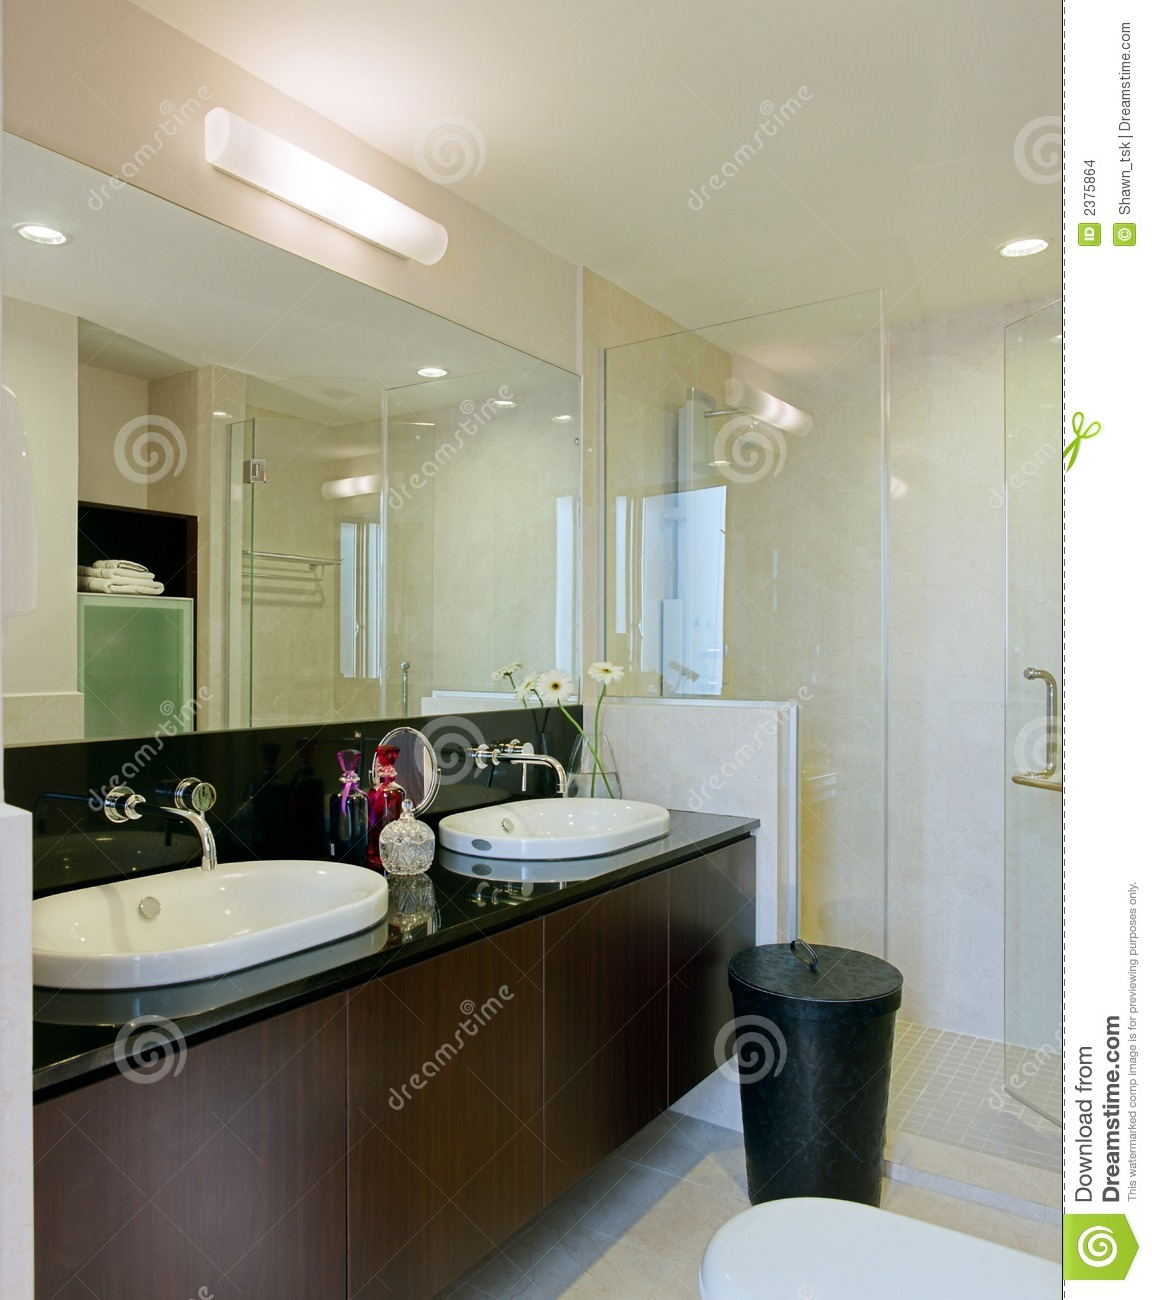 Interior Design Bathroom Stock Images Image 2375864